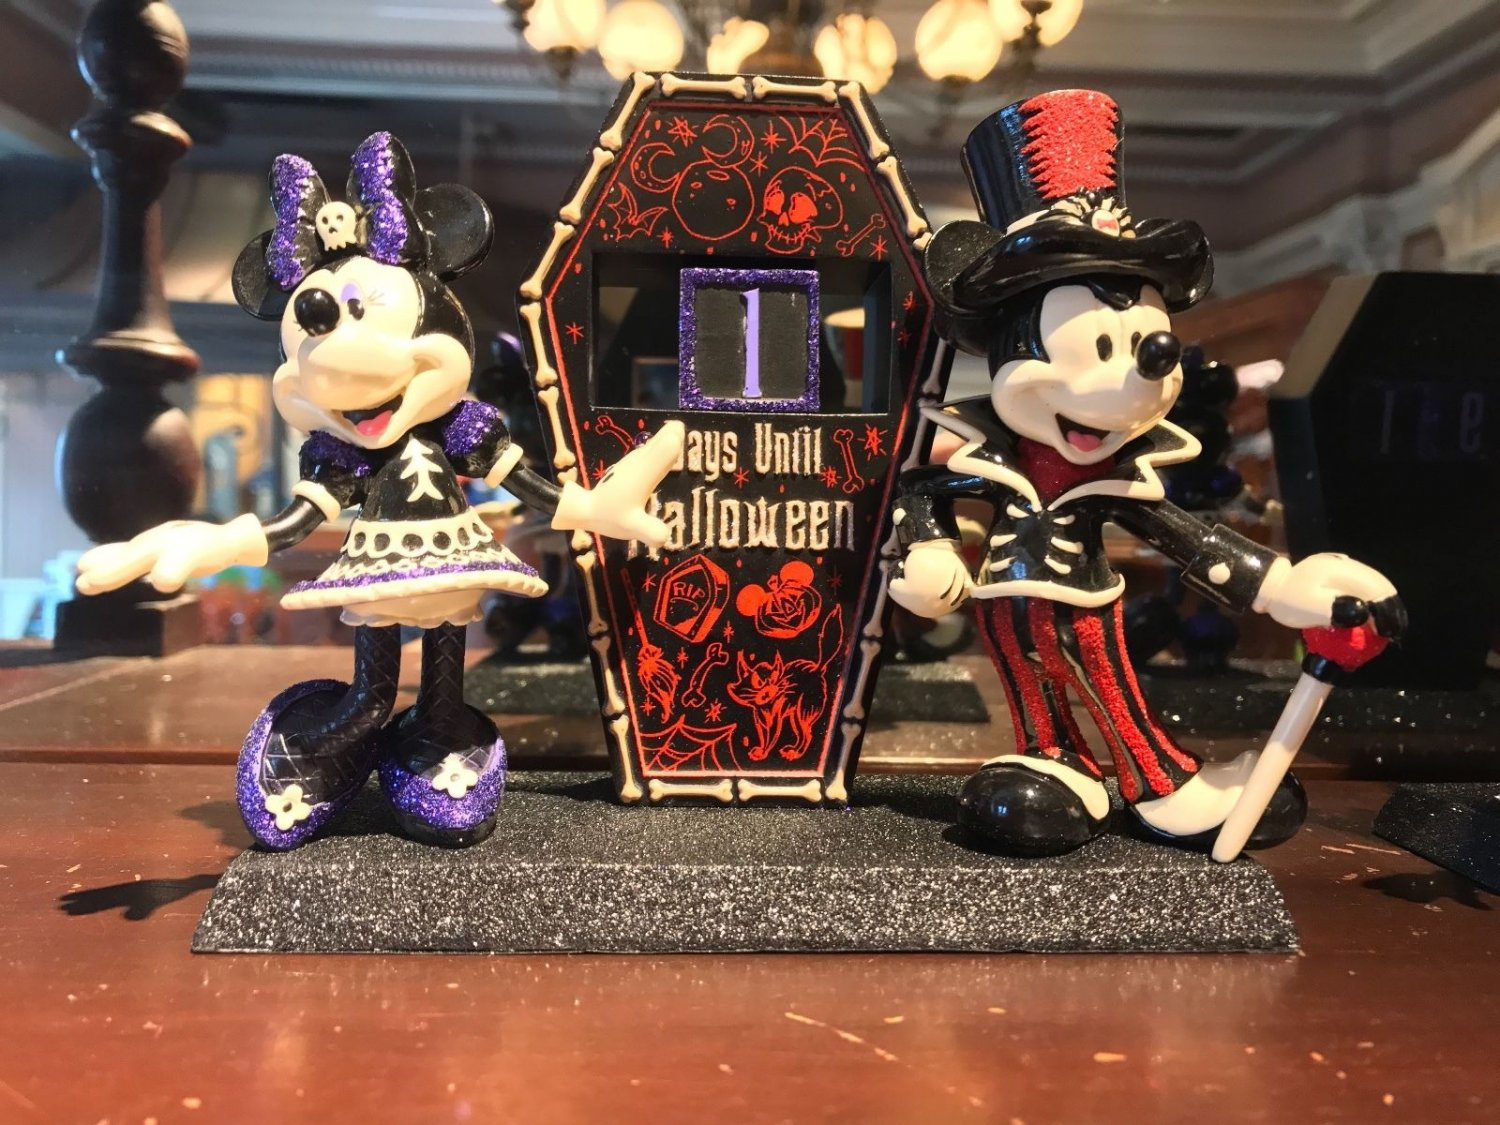 Disney Parks Mickey & Minnie Mouse Days Until Halloween Countdown Figure New